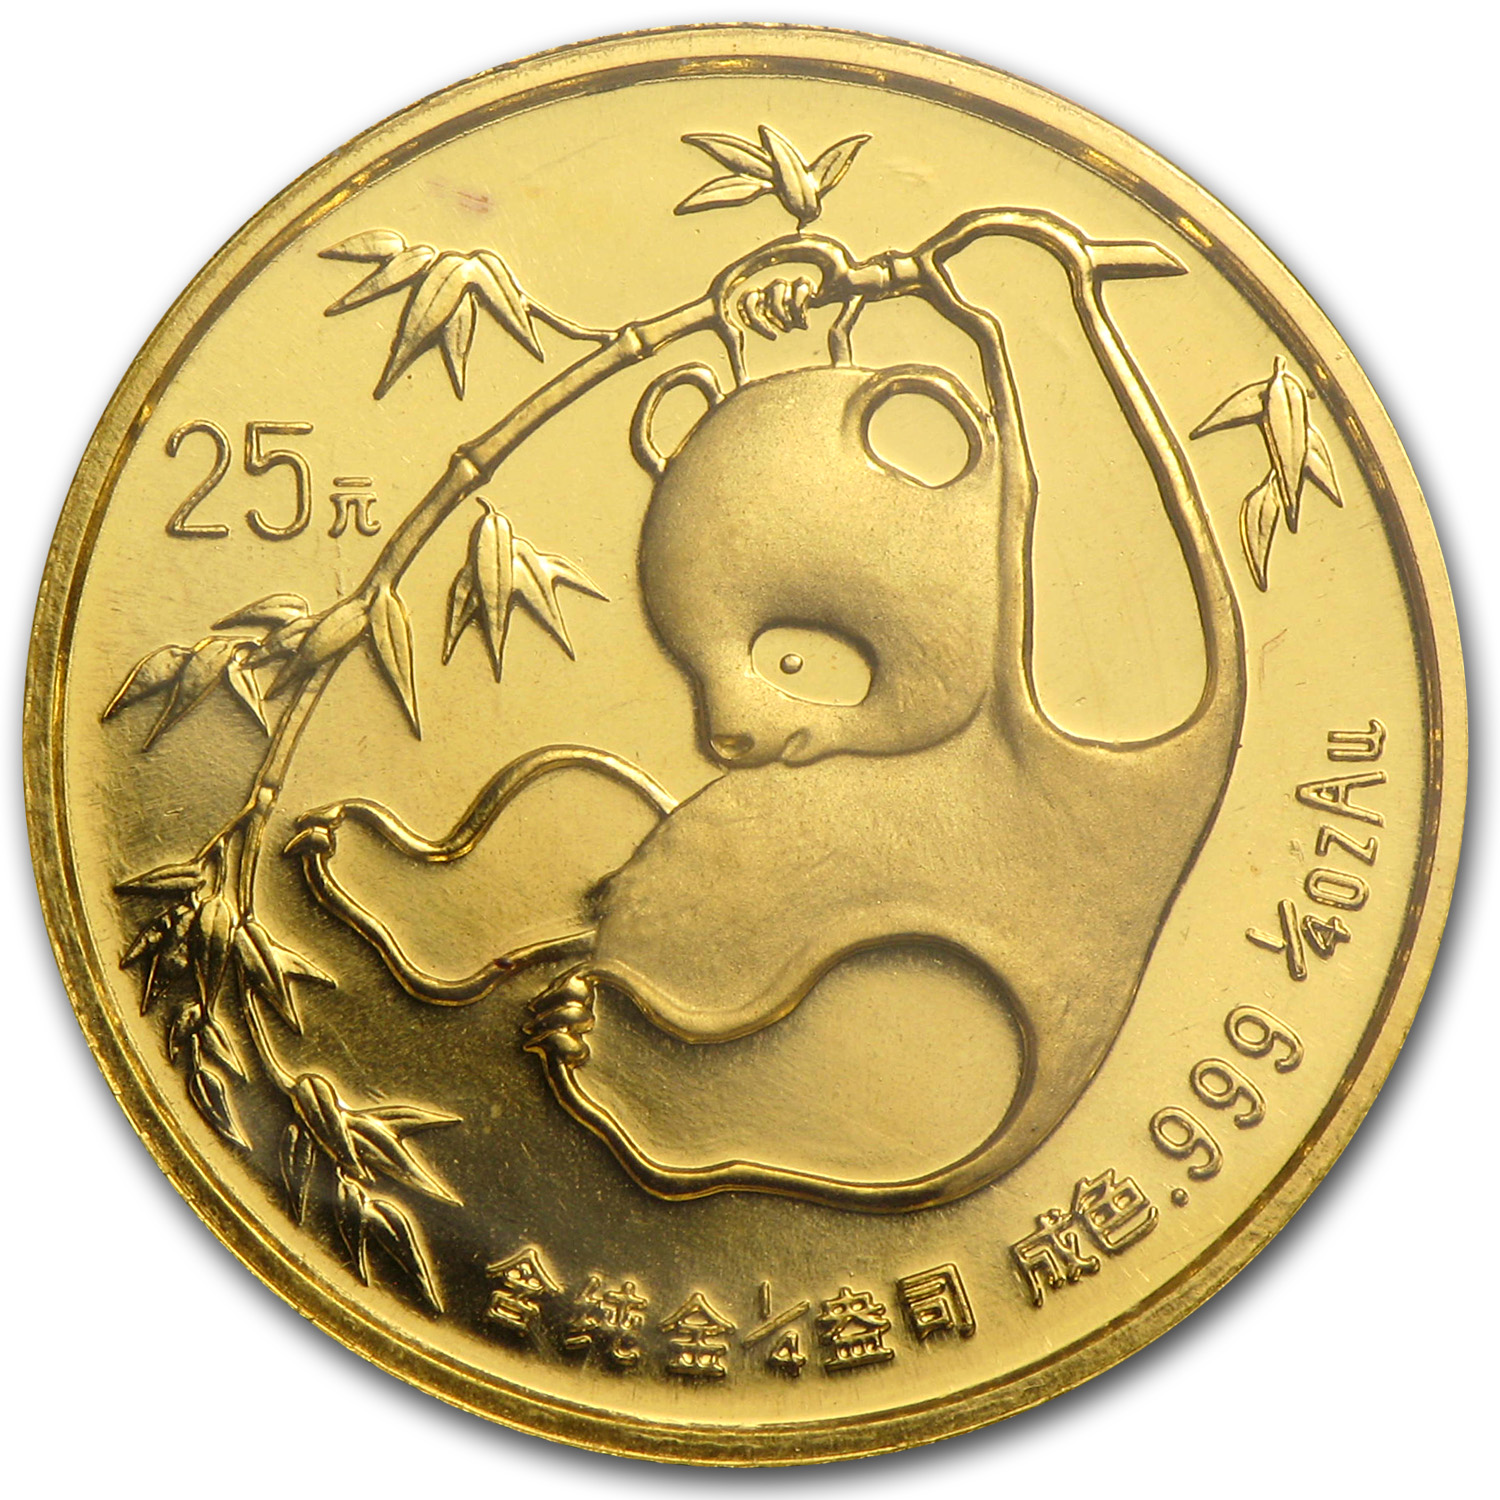 1985 1/4 oz Gold Chinese Panda BU (Sealed)